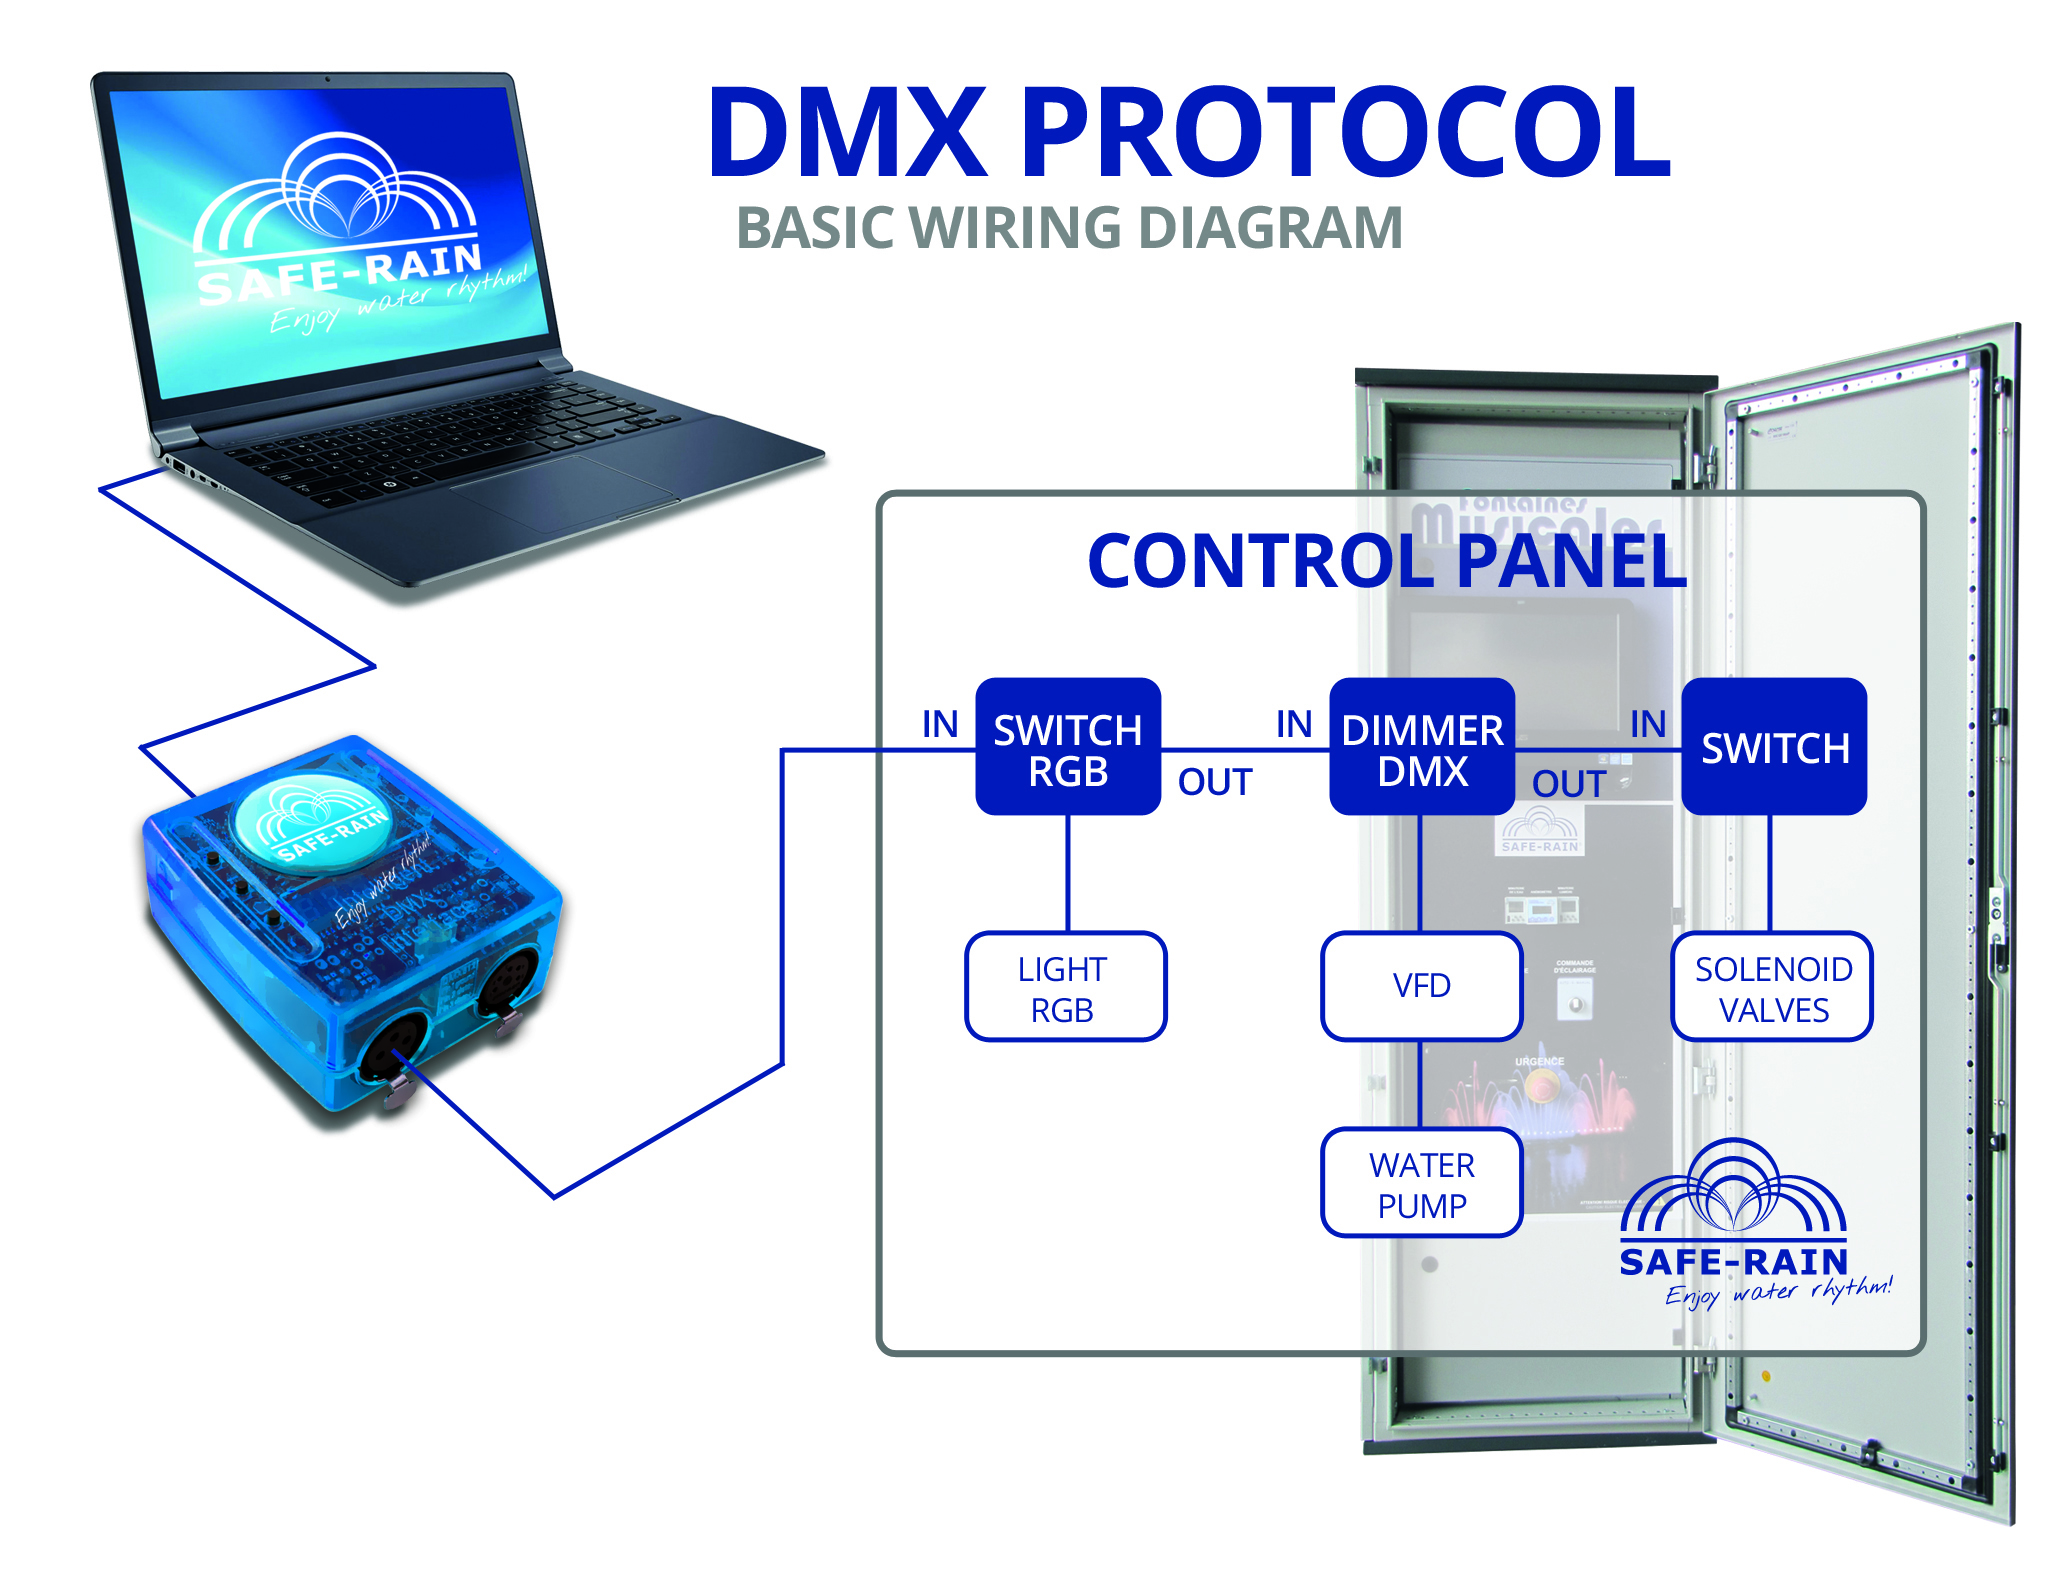 Architectural Dmx Lighting Wiring Diagram - House Wiring Diagram ...